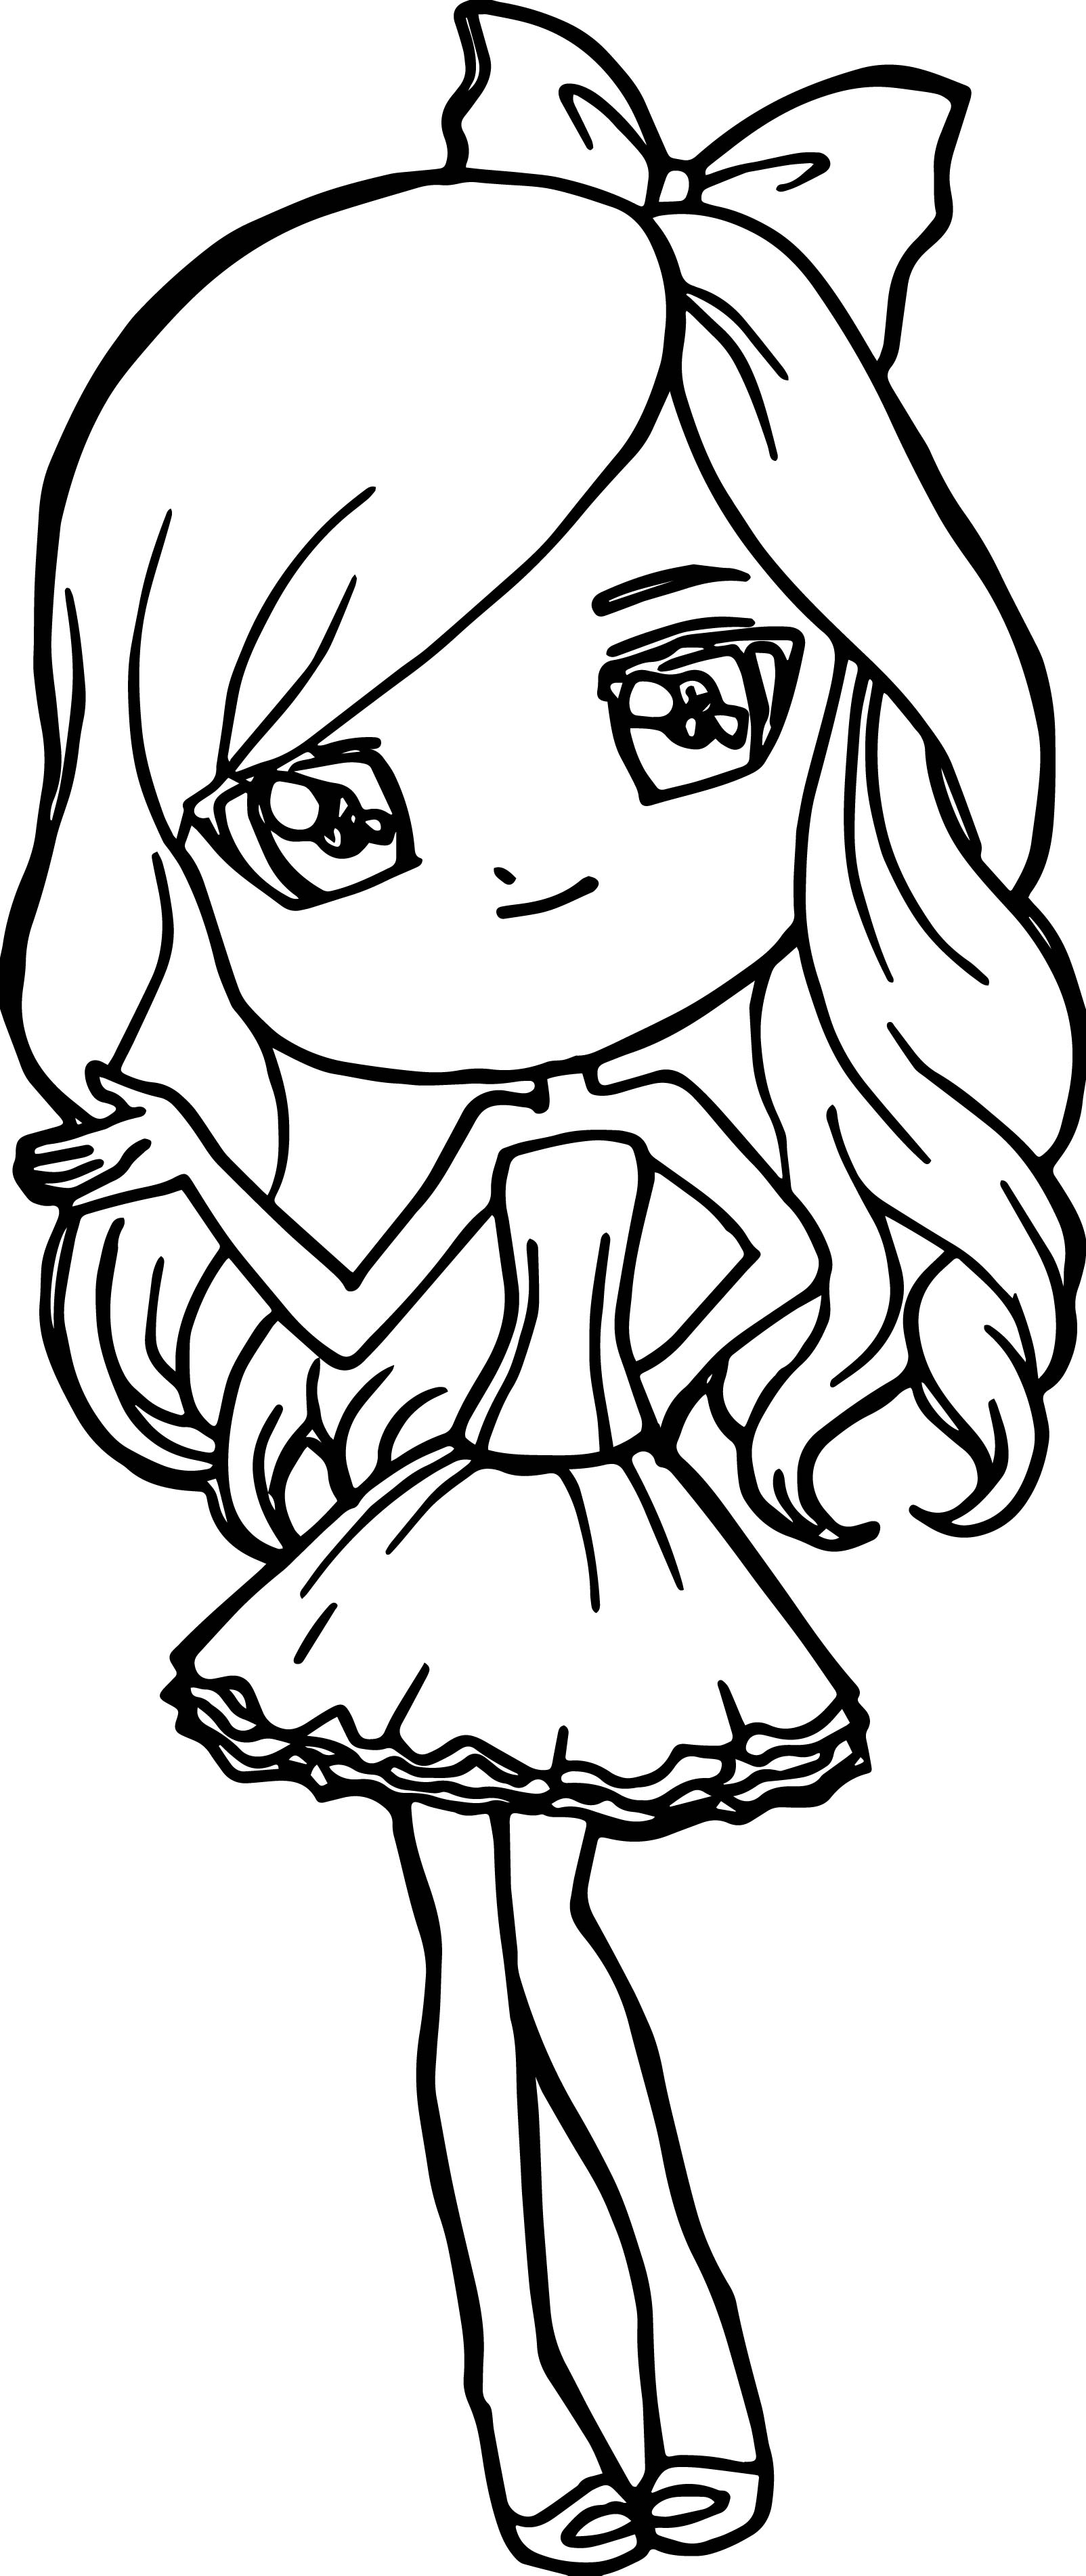 jess barbie coloring page wecoloringpage